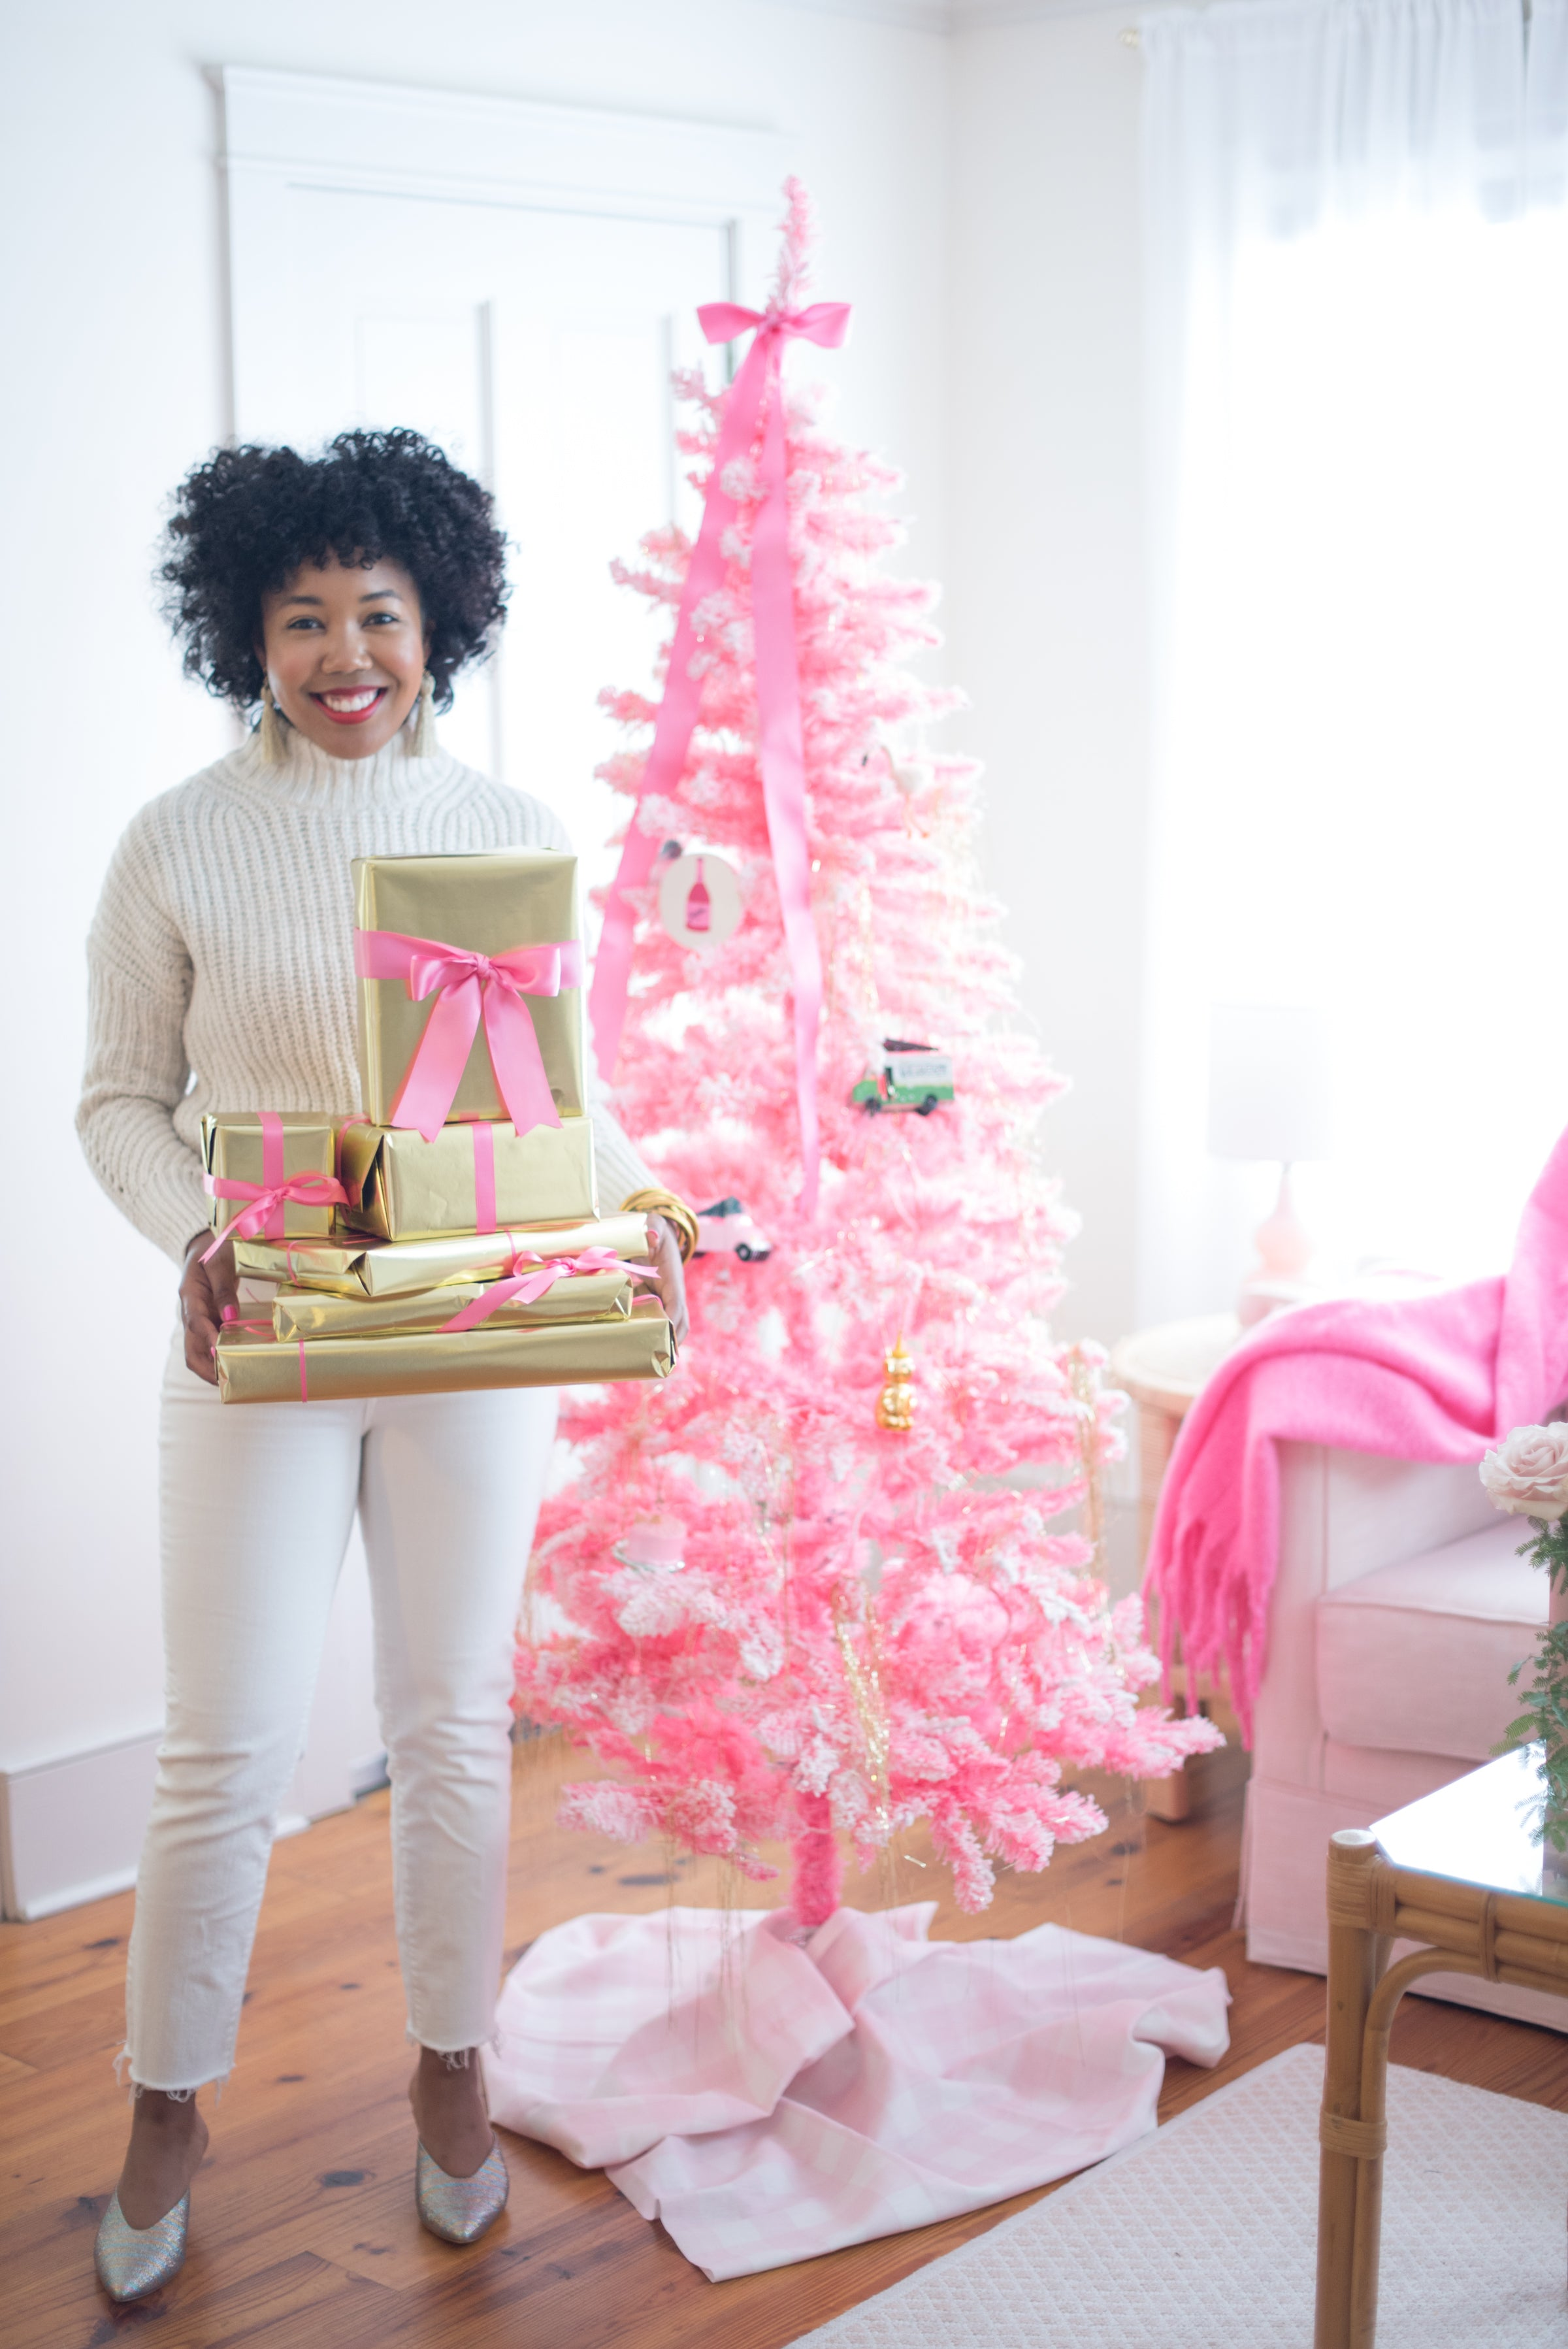 Black woman in a white sweater and white jeans holding gifts wrapped in gold paper and hot pink ribbon